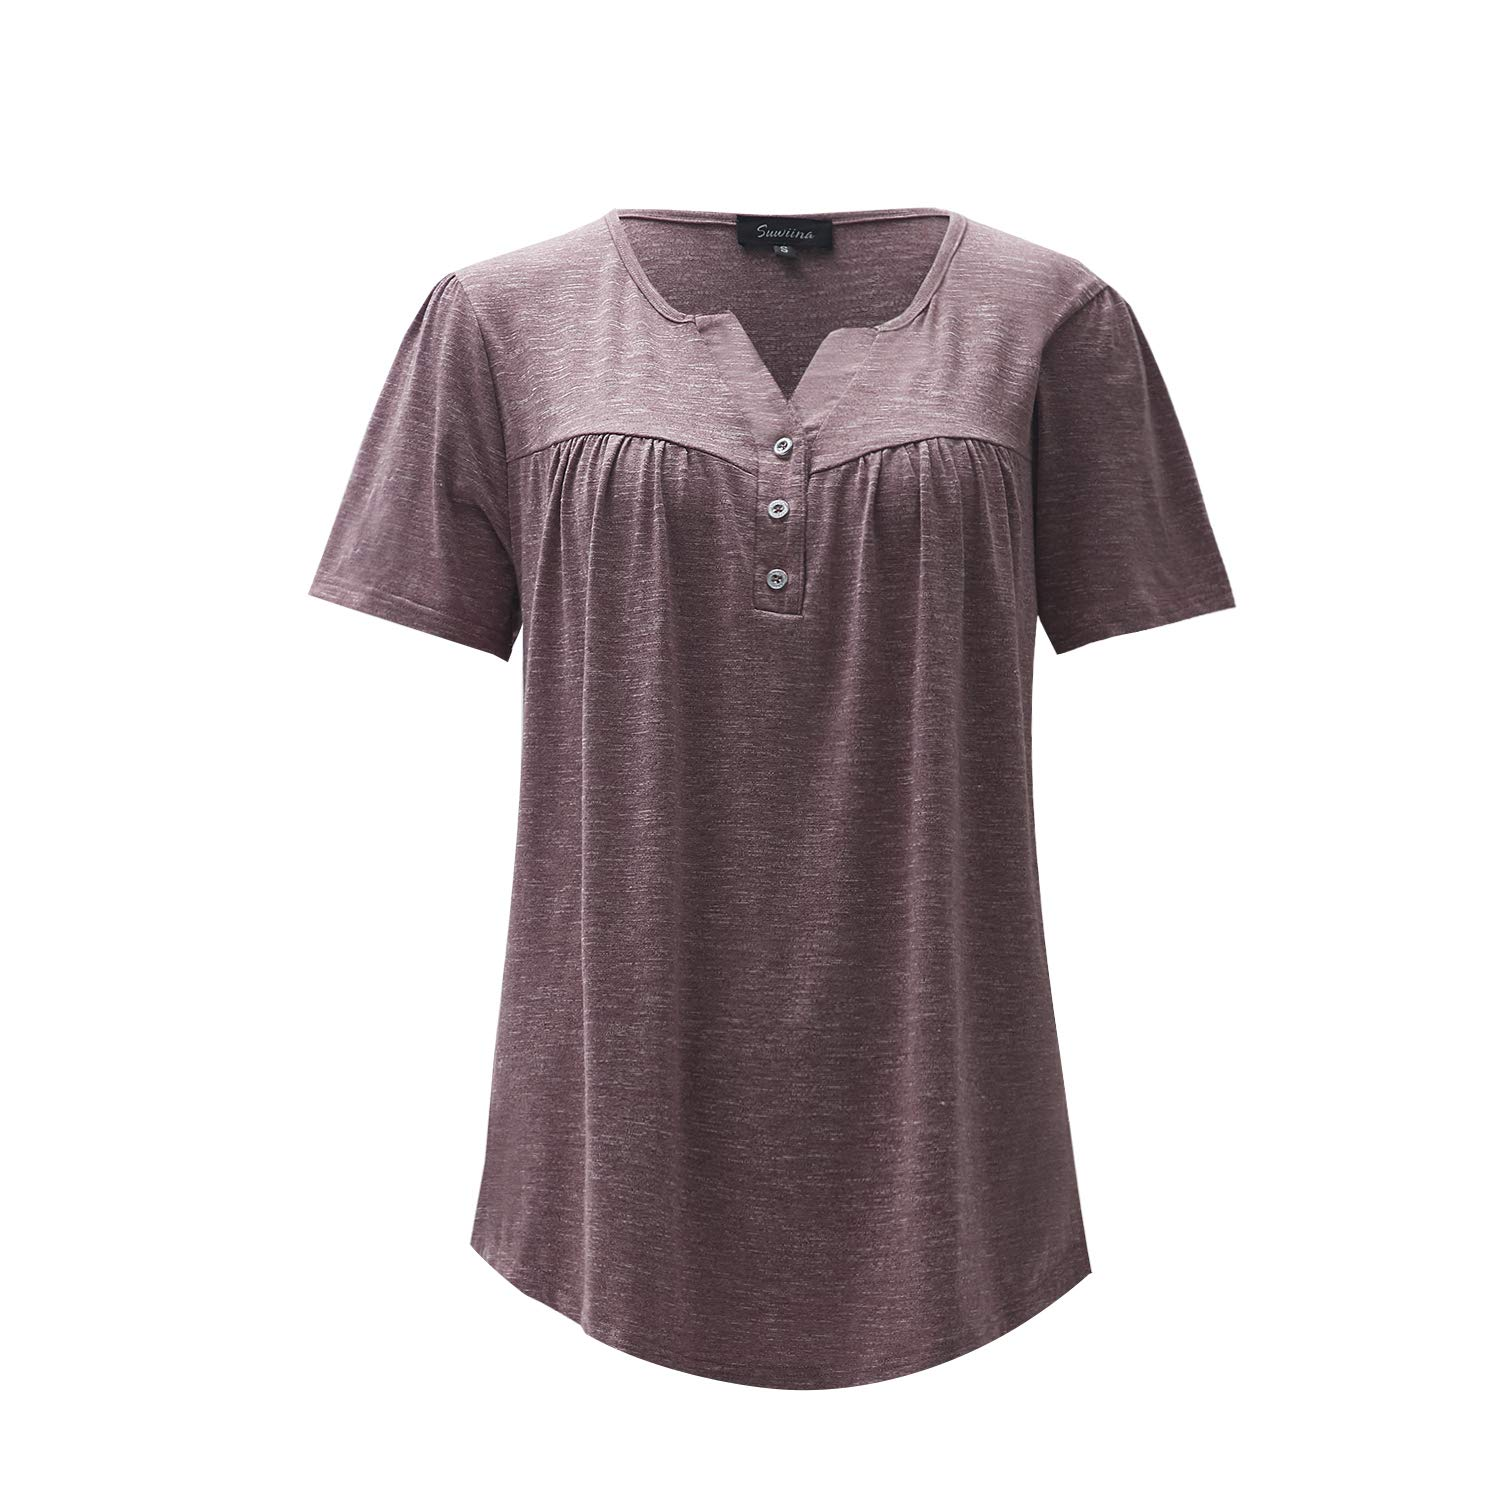 SUWIINA Womens V Neck Short Sleeve Pleated Ruffle Button Up Loose Casual T-Shirts Tunic Tops Blouses Pink Purple